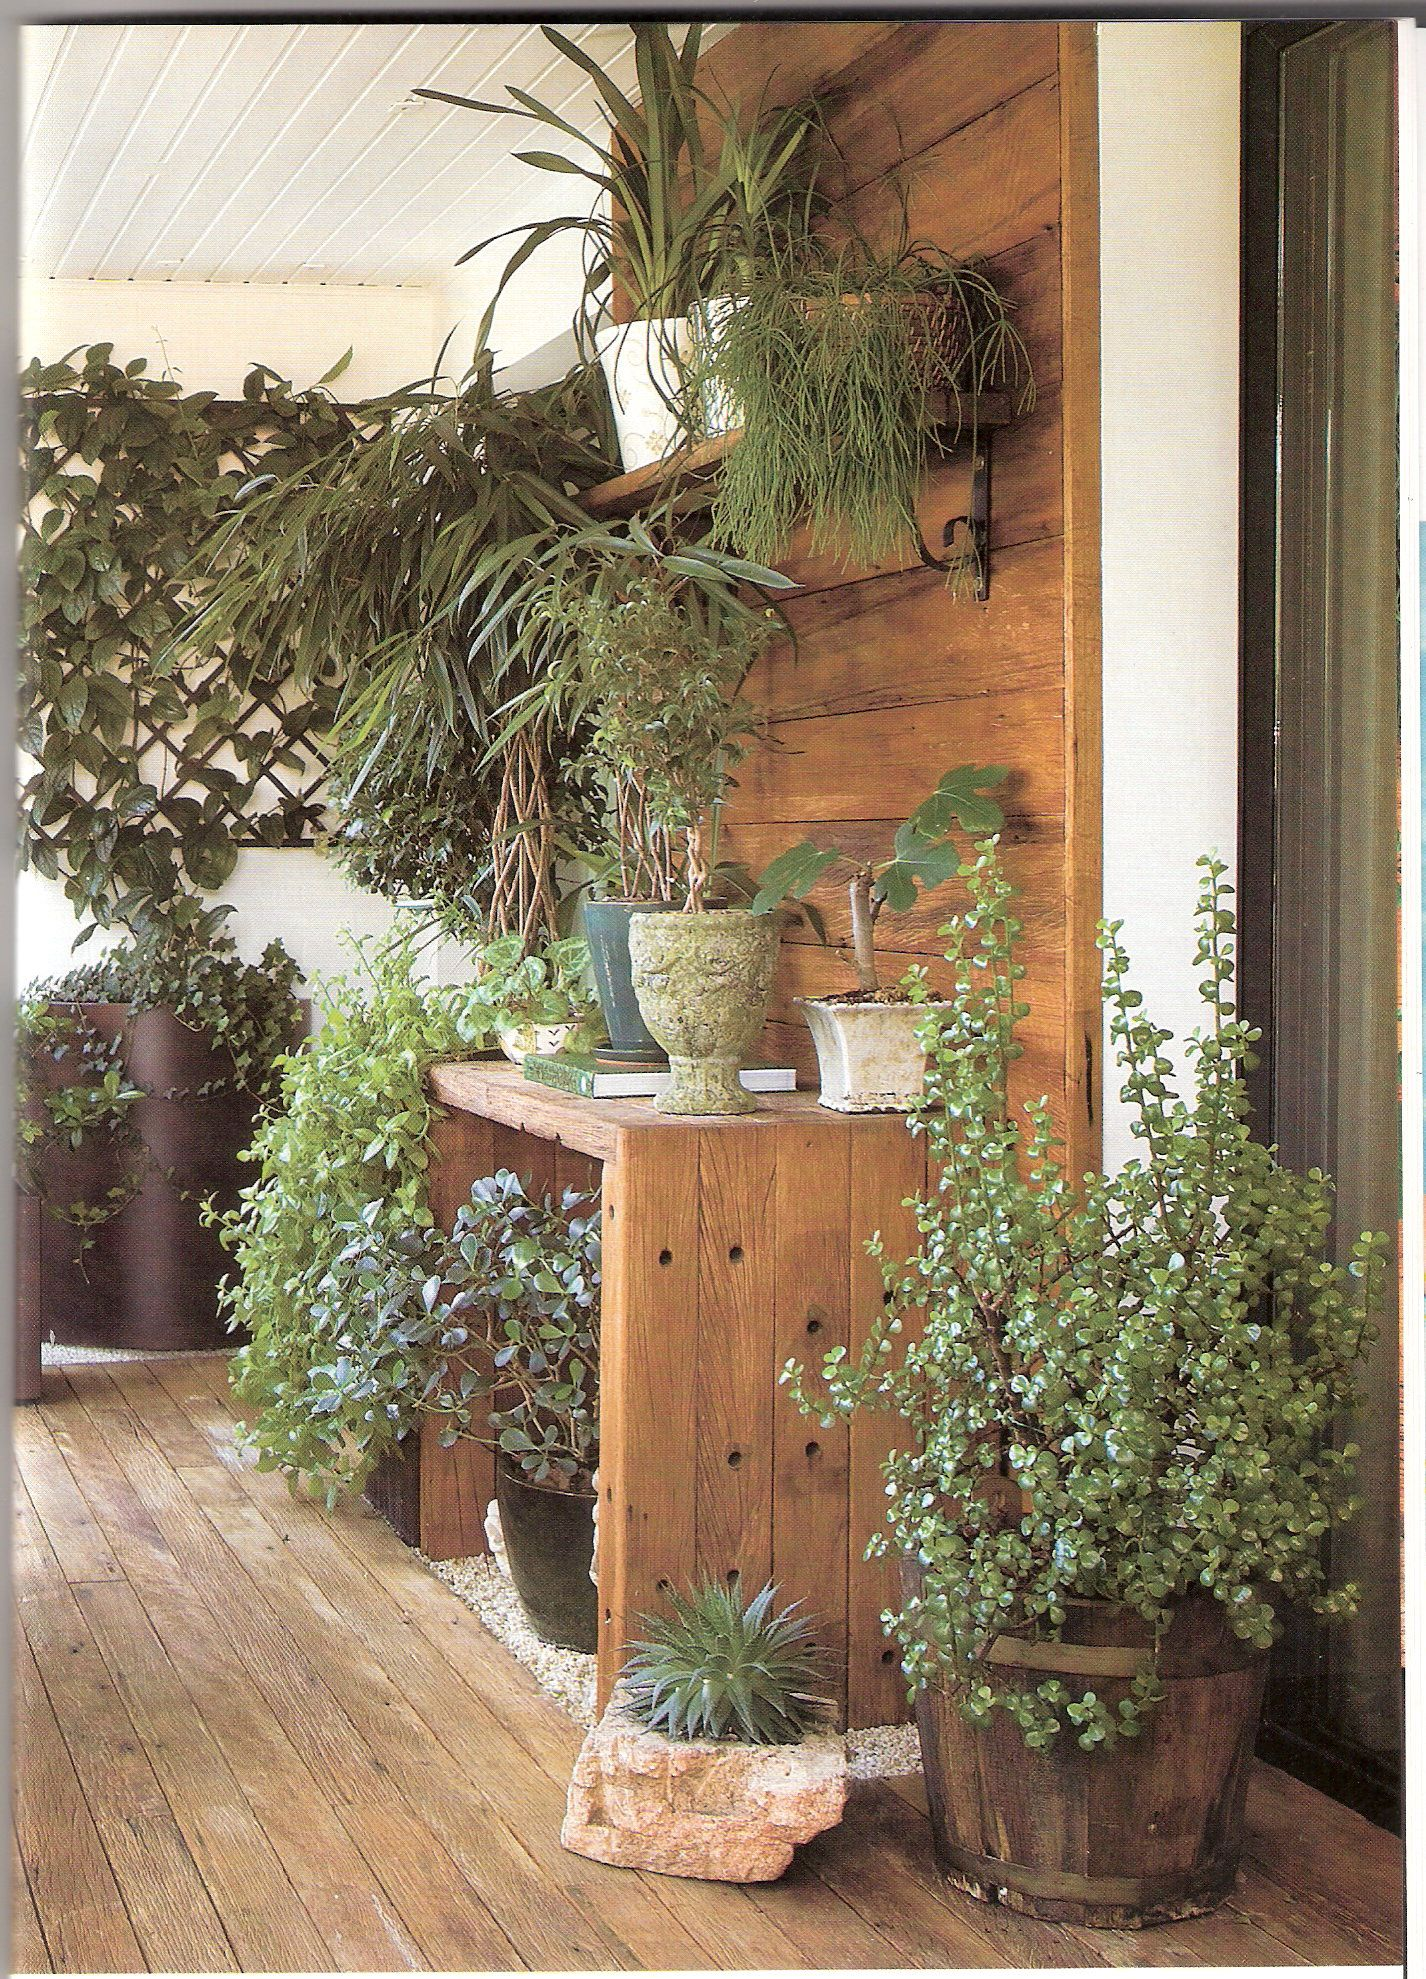 Hiding air conditioner Make this try that Pinterest #91603A